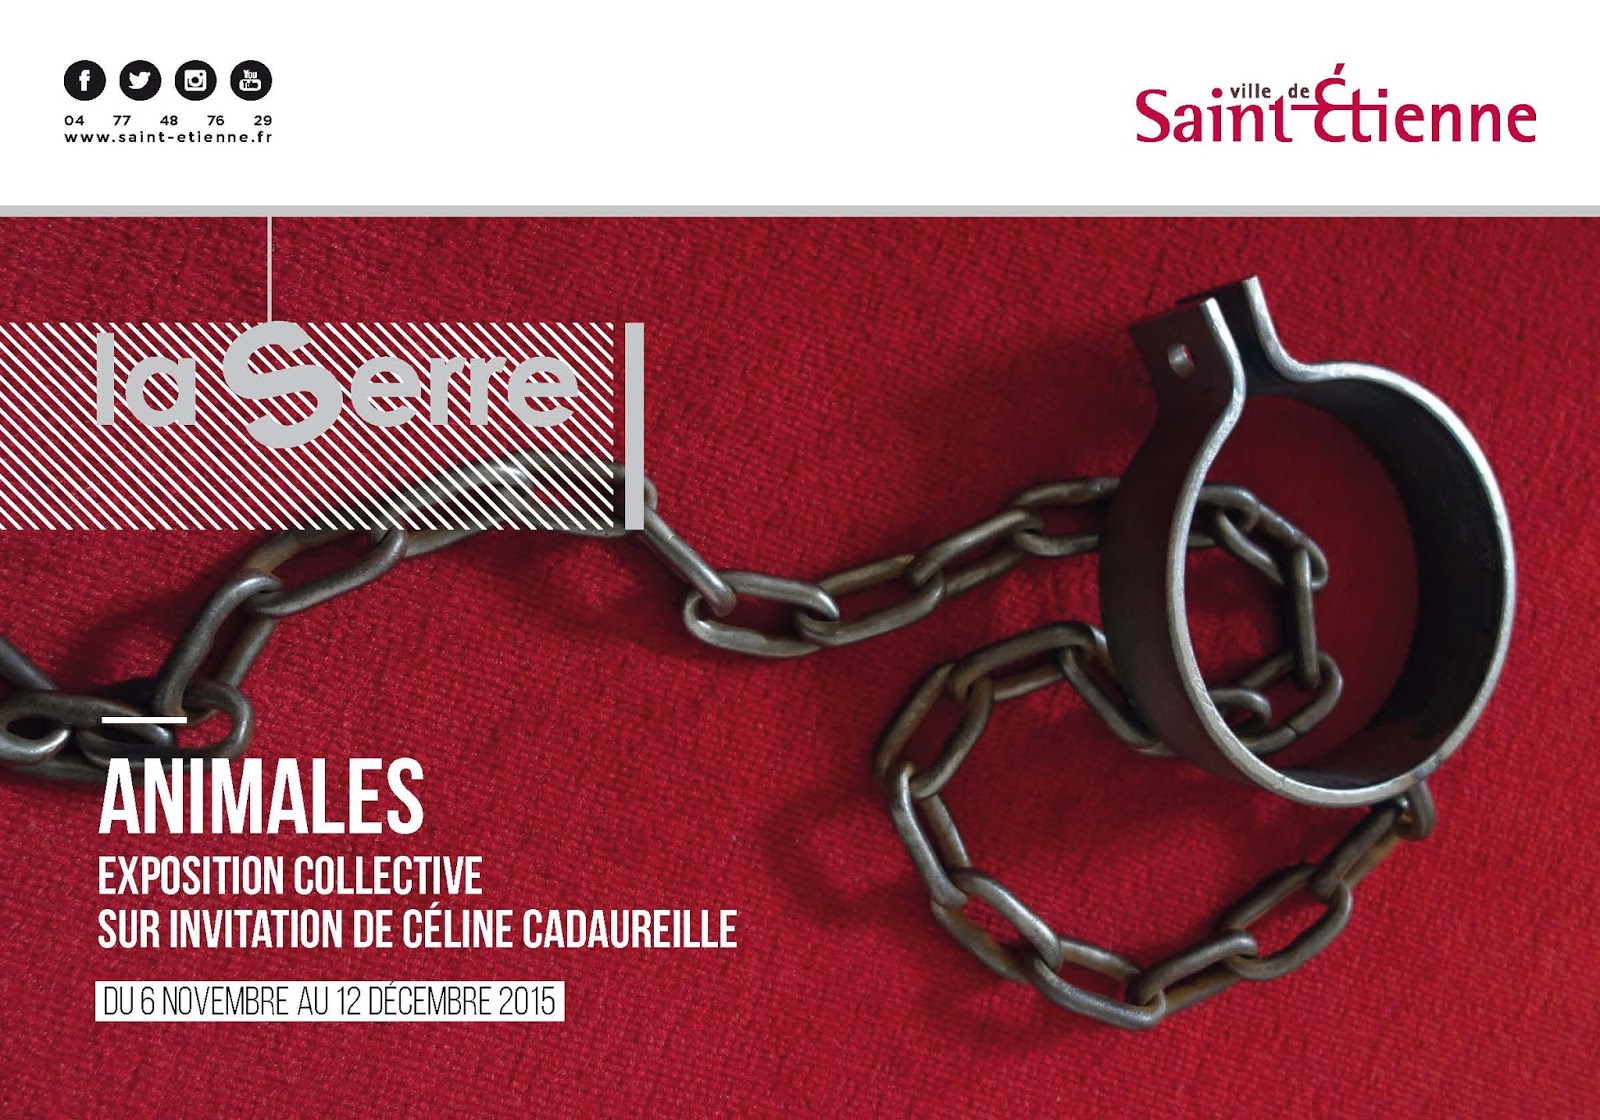 Animales - Exposition collective - La Serre de Saint-Etienne